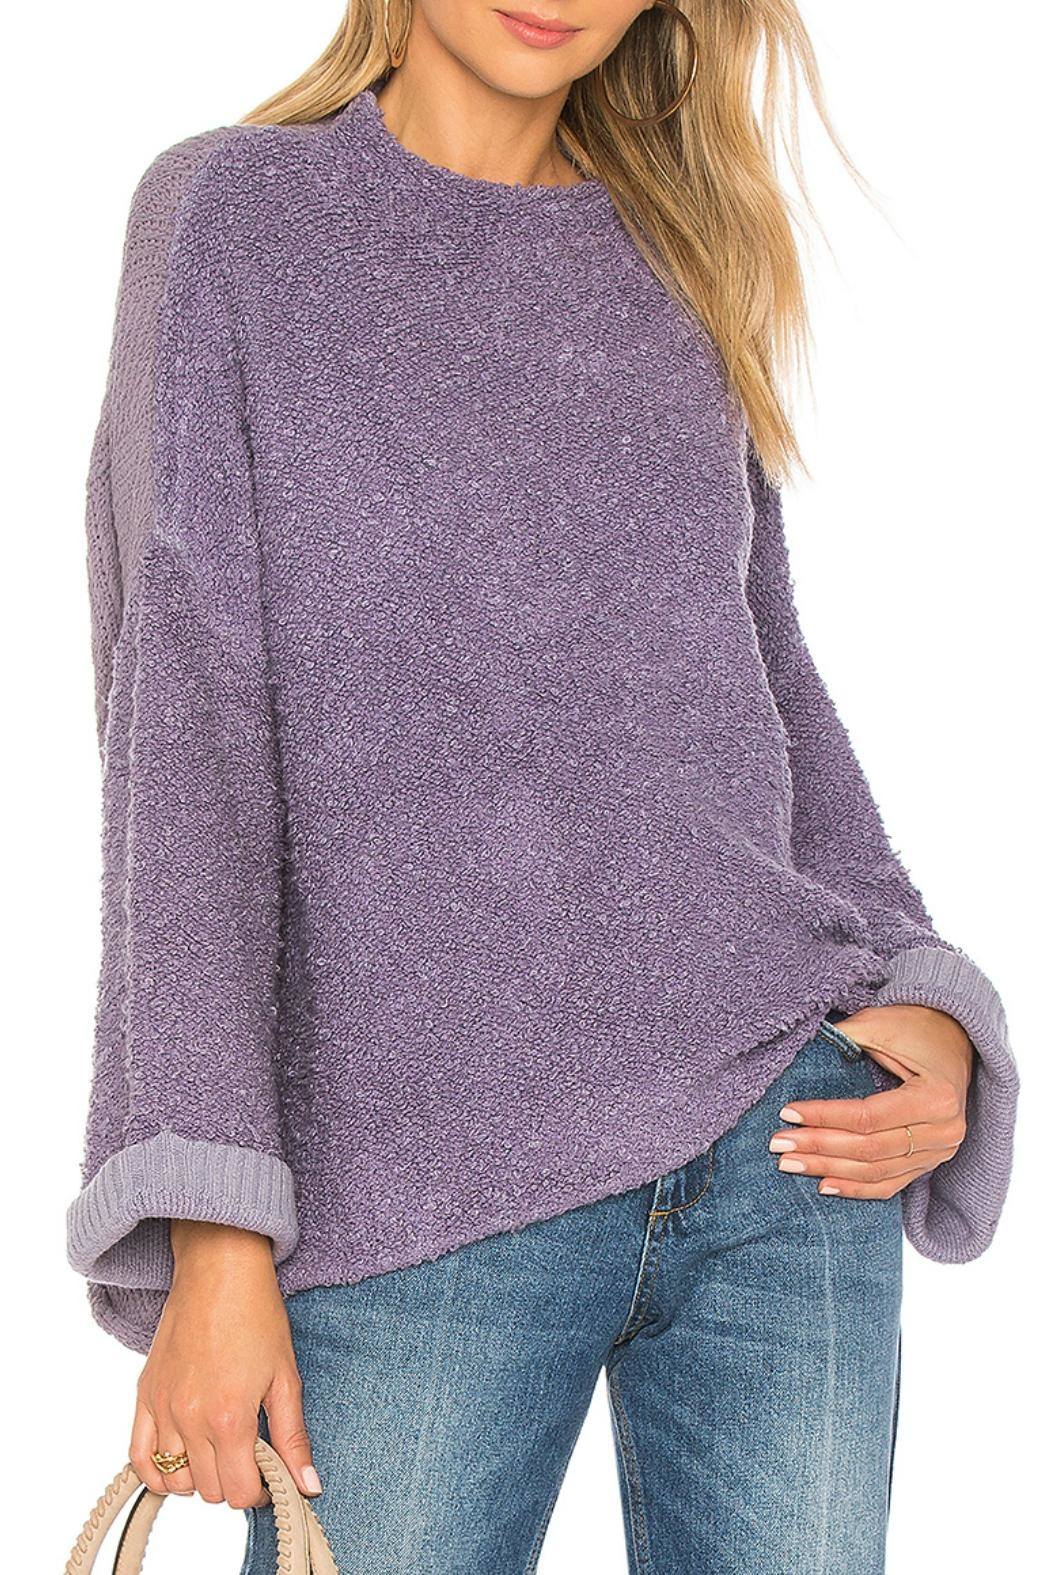 Free People Cuddle Up Pullover - Main Image